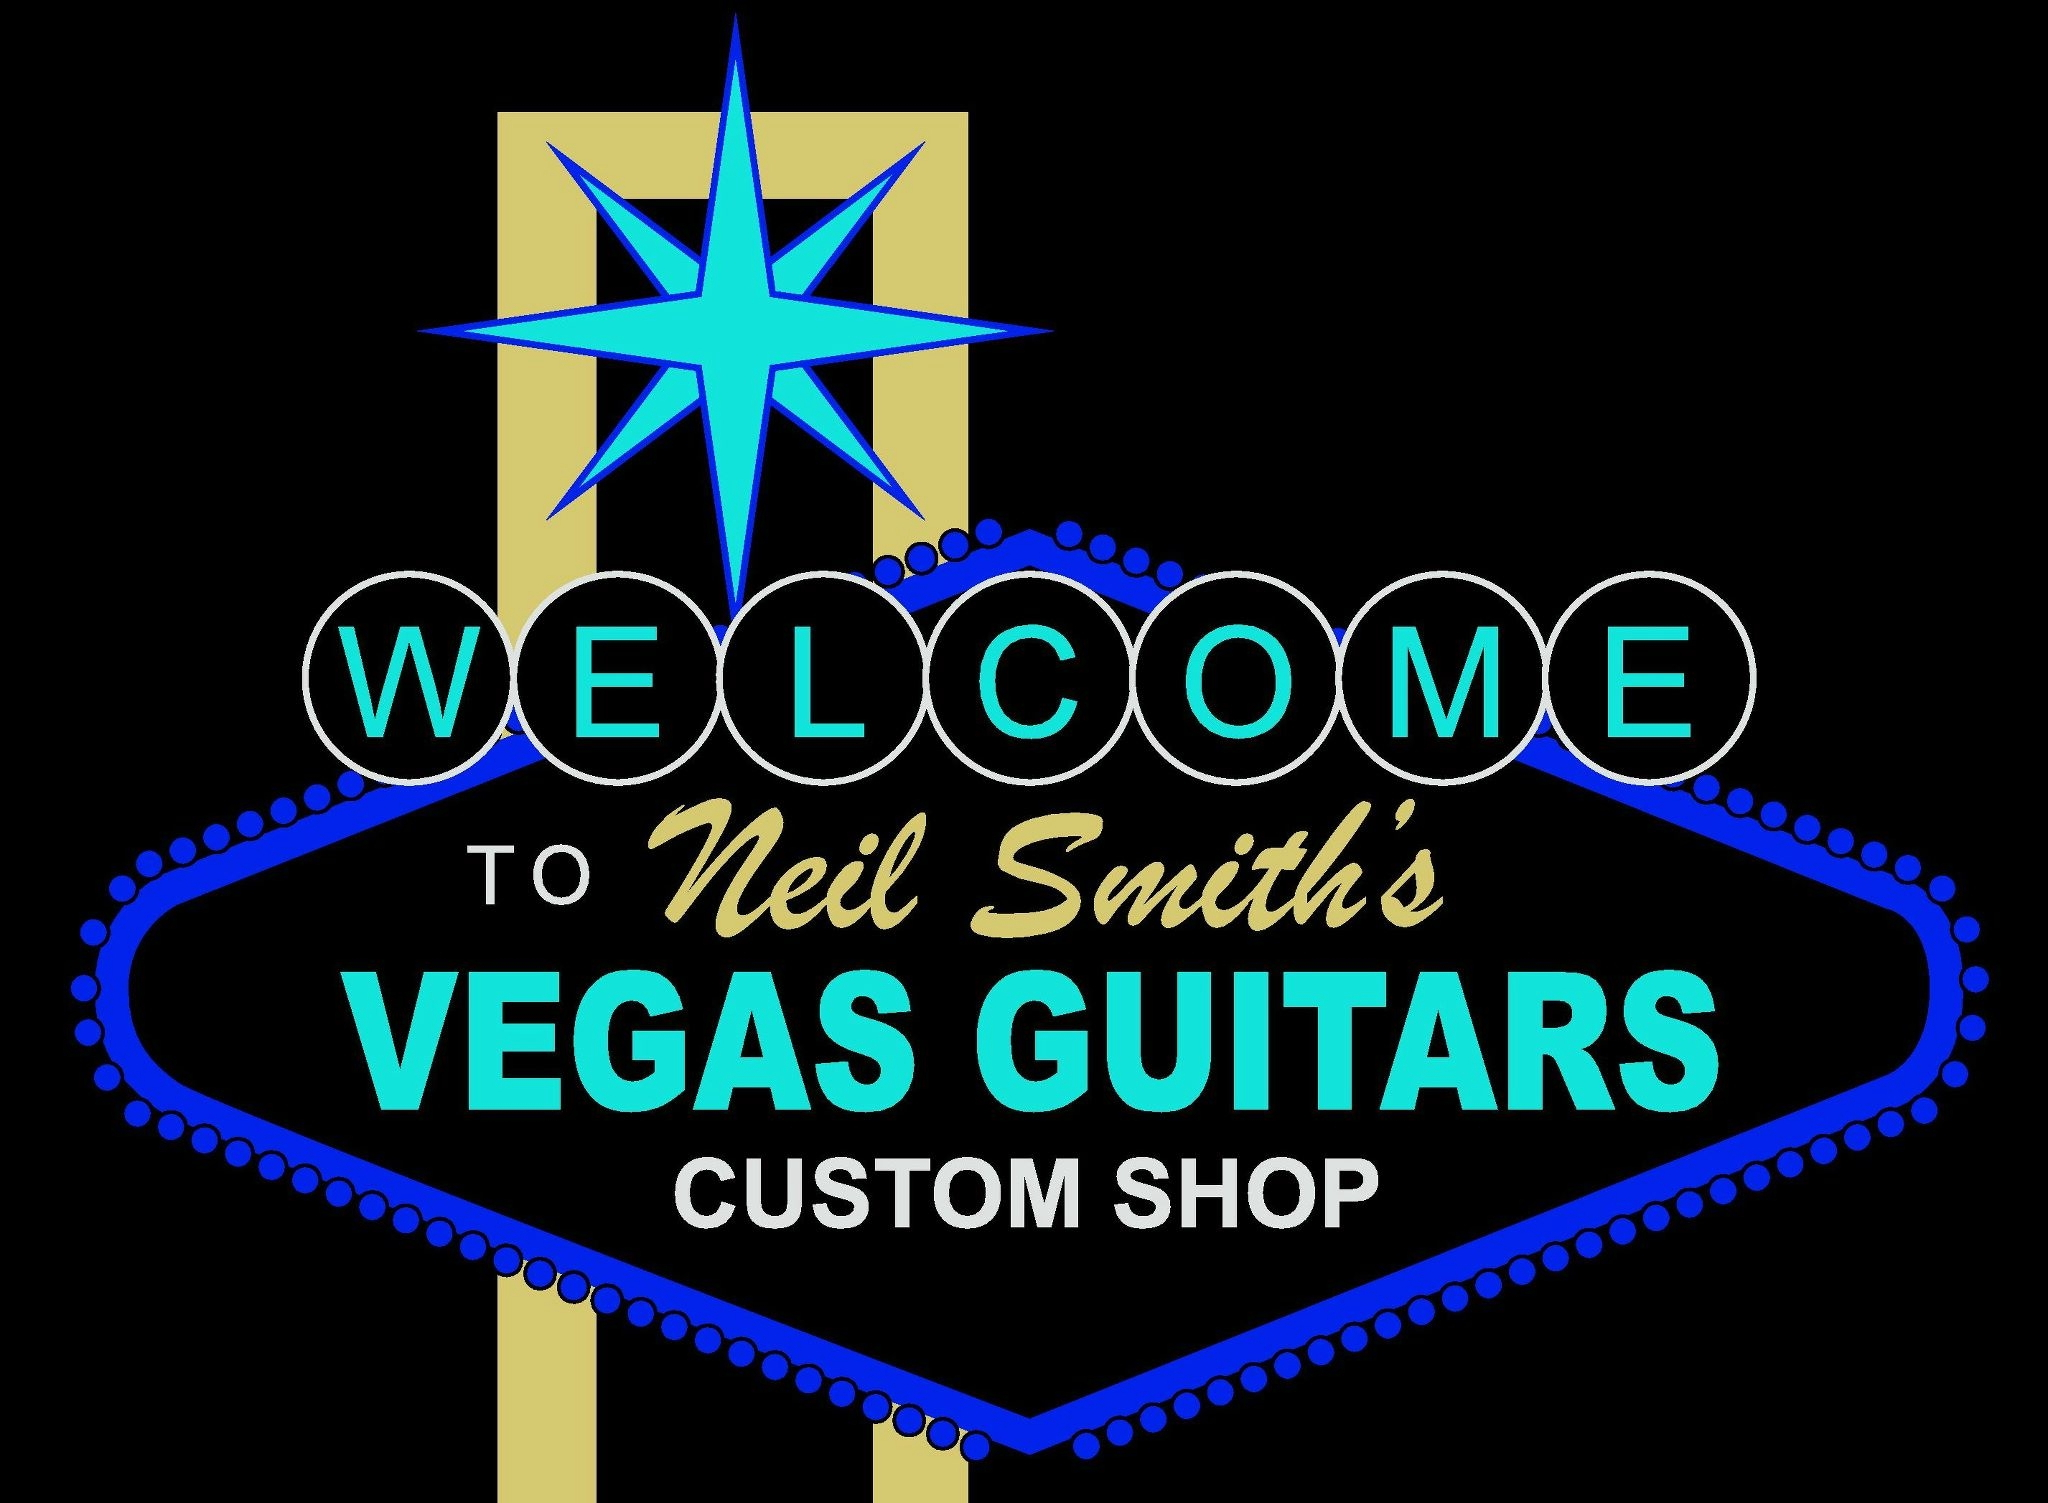 Vegas Guitars Custom Shop